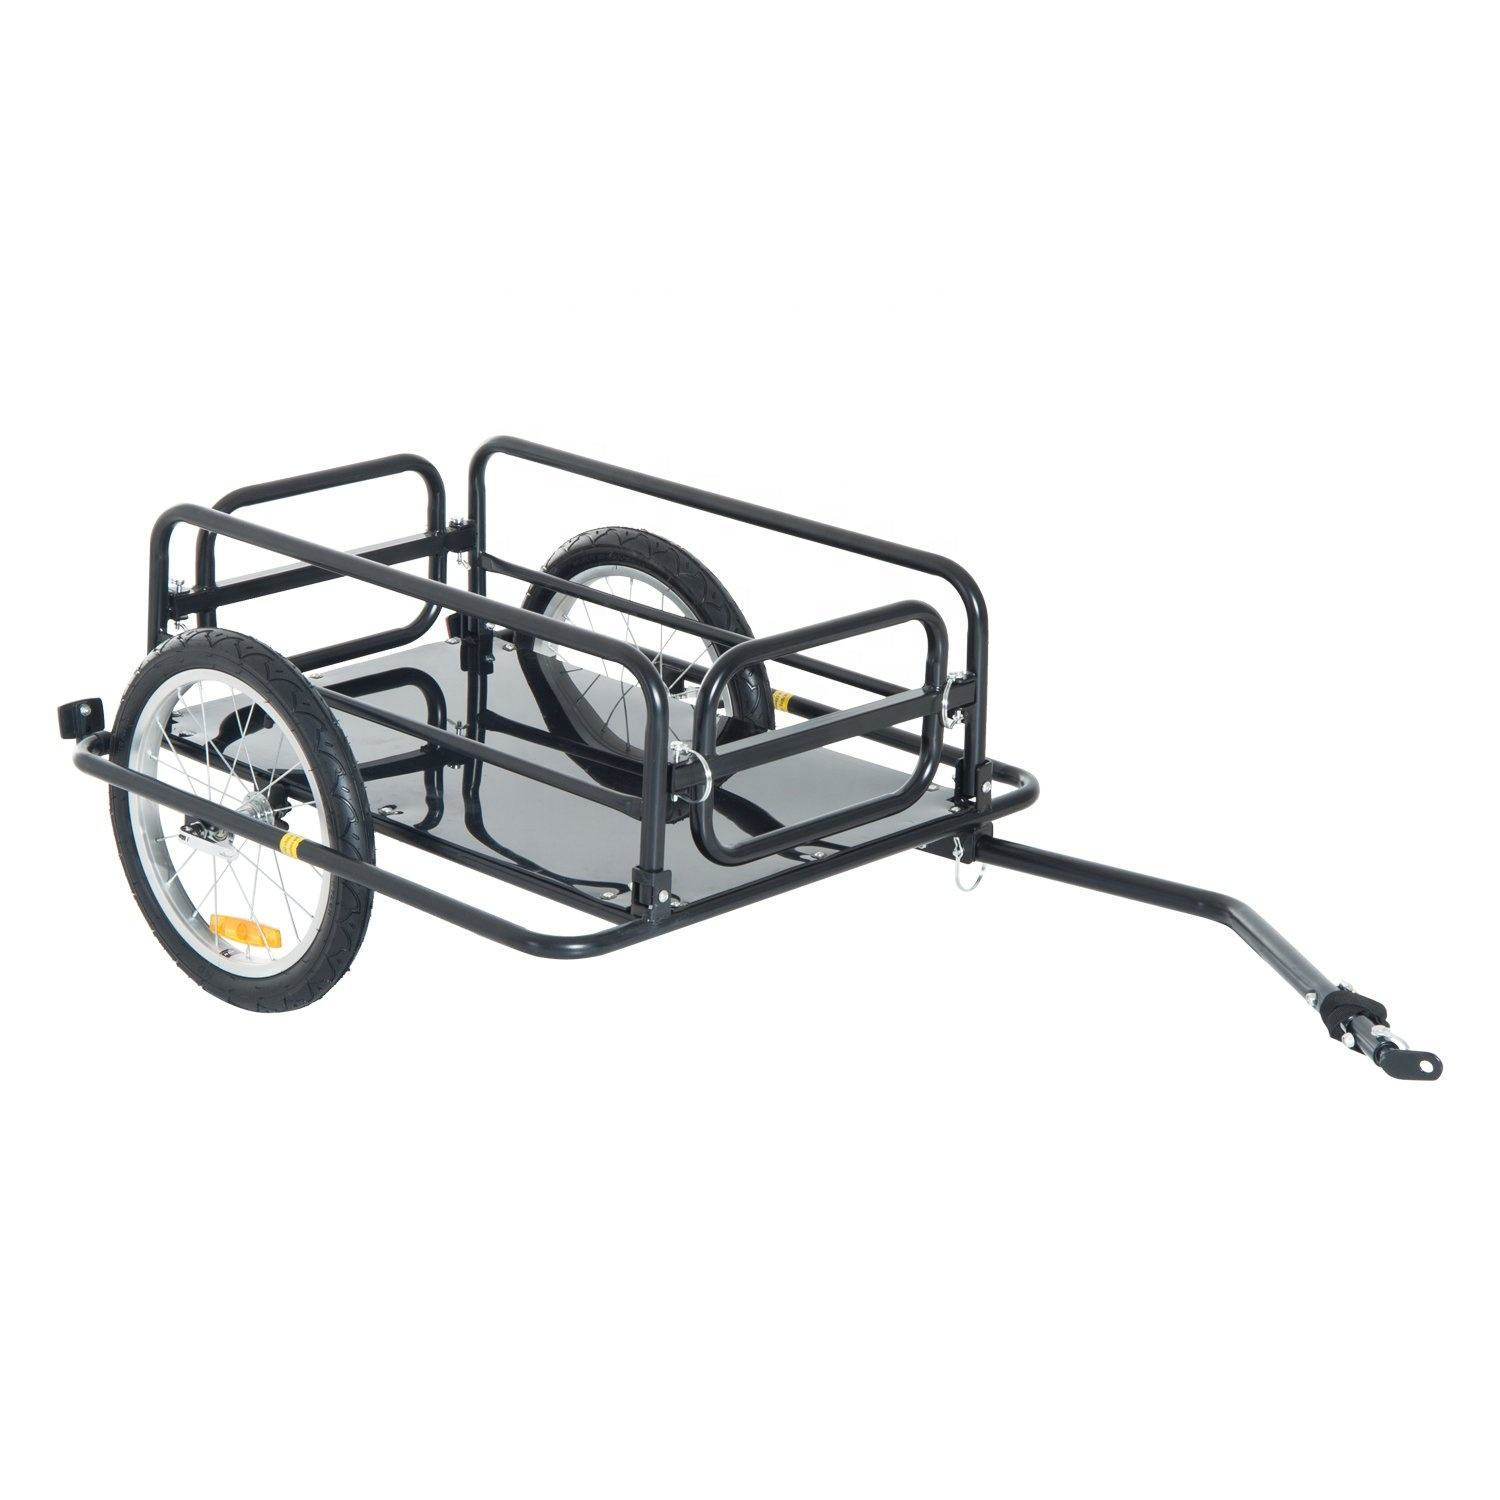 Folding Bicycle Bike Cargo Storage Cart and Luggage Trailer with Hitch